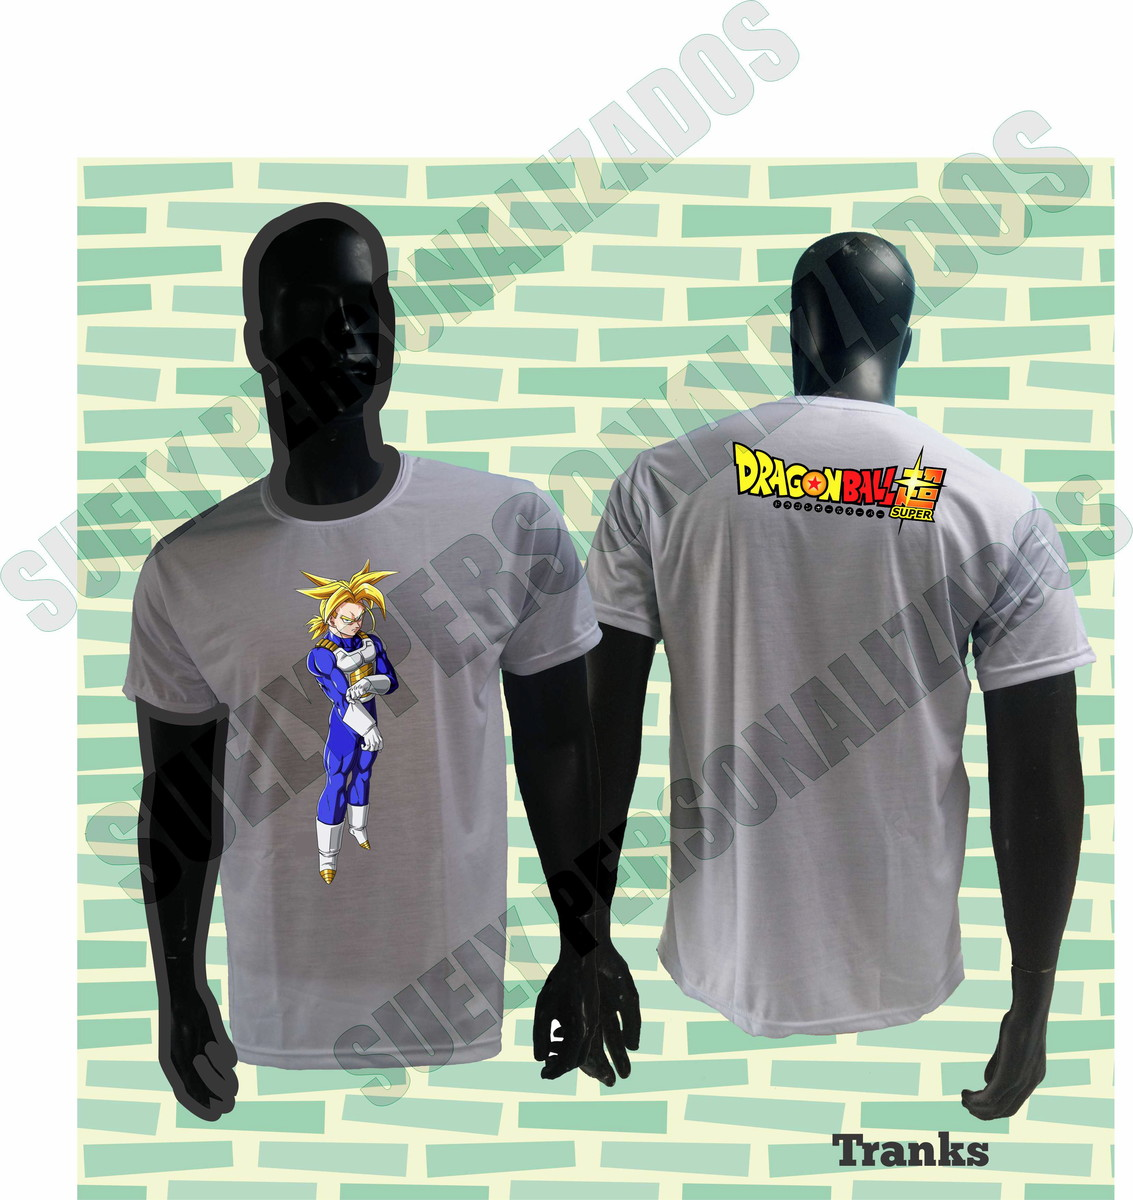 CAMISA DRAGON BALL SUPER  125 TRUNKS no Elo7  1cea0352ab415